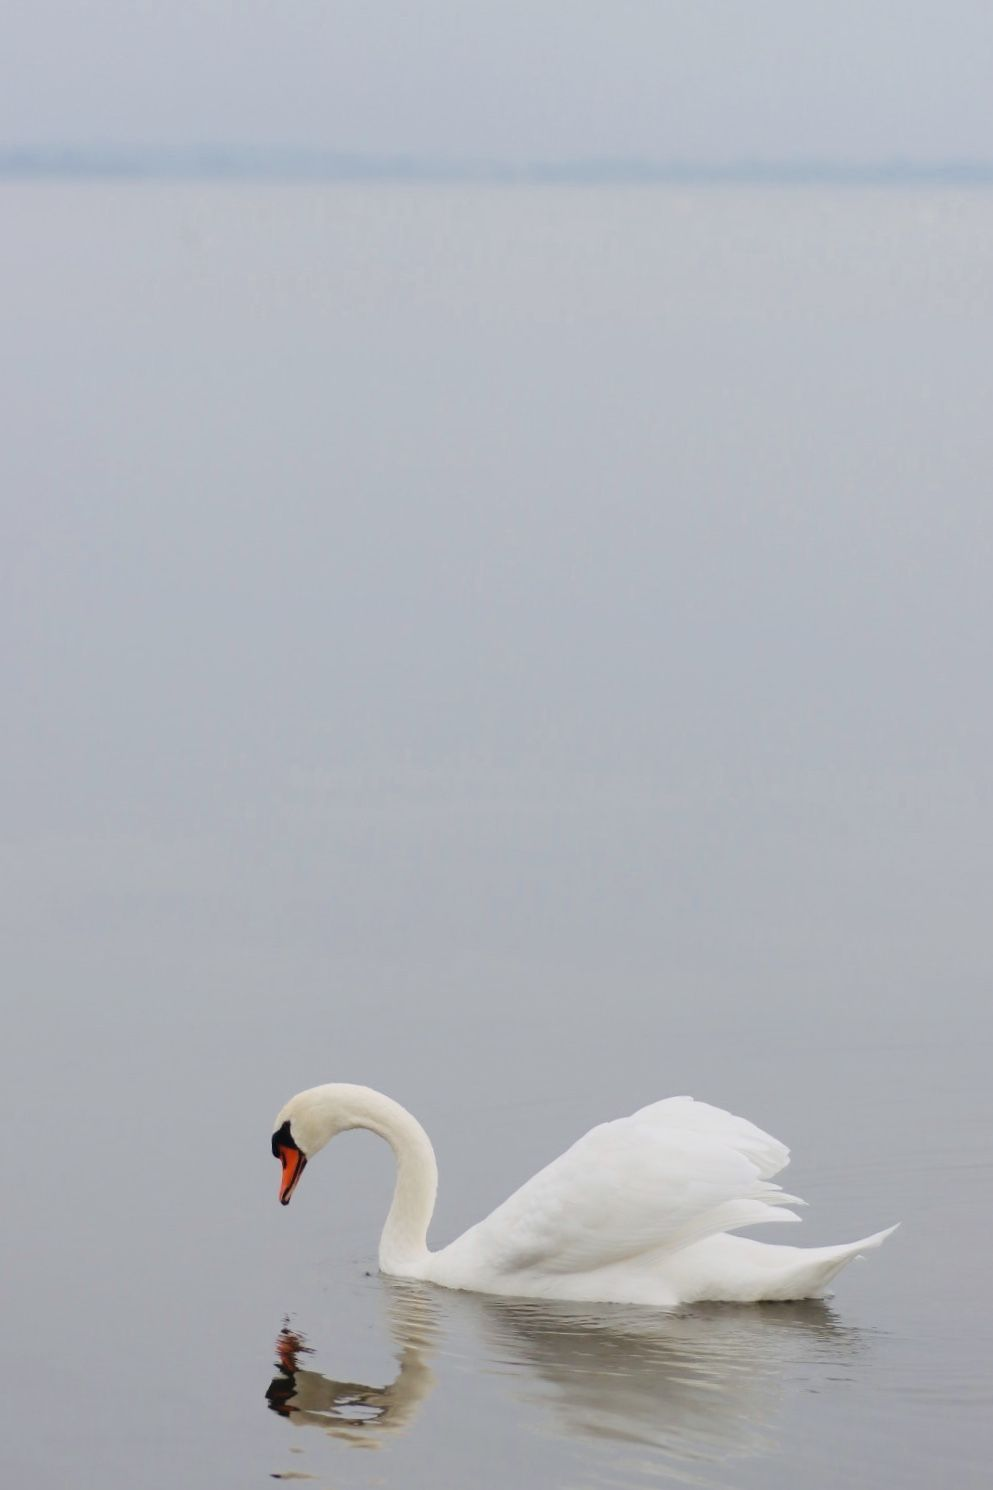 The beauty of nature. #swan #nature #art #photography #naturephotography #lake #photographyart #animal #wildlife #canonphotography #outdoorbeauty #outdoor